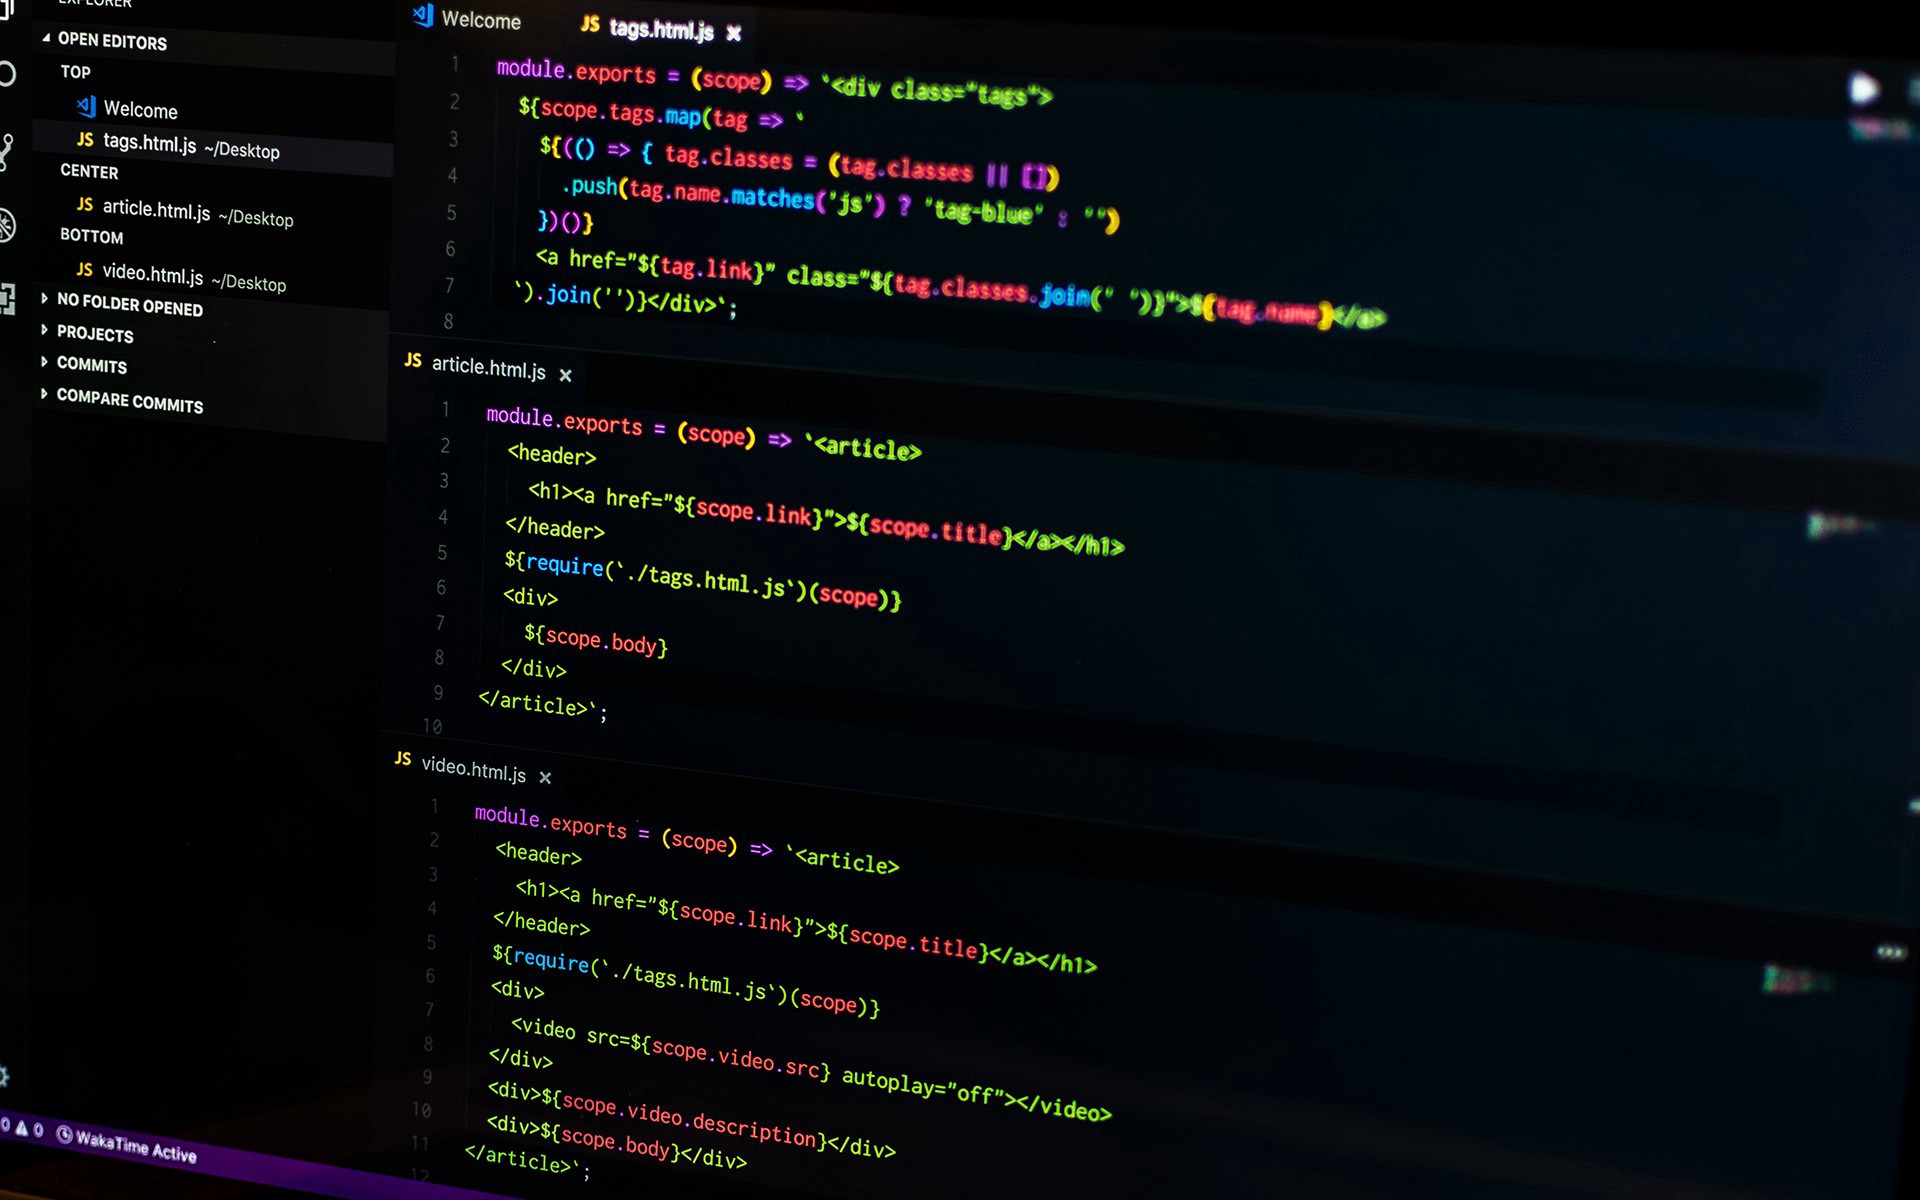 Setup A Visual Studio Code Development Environment With